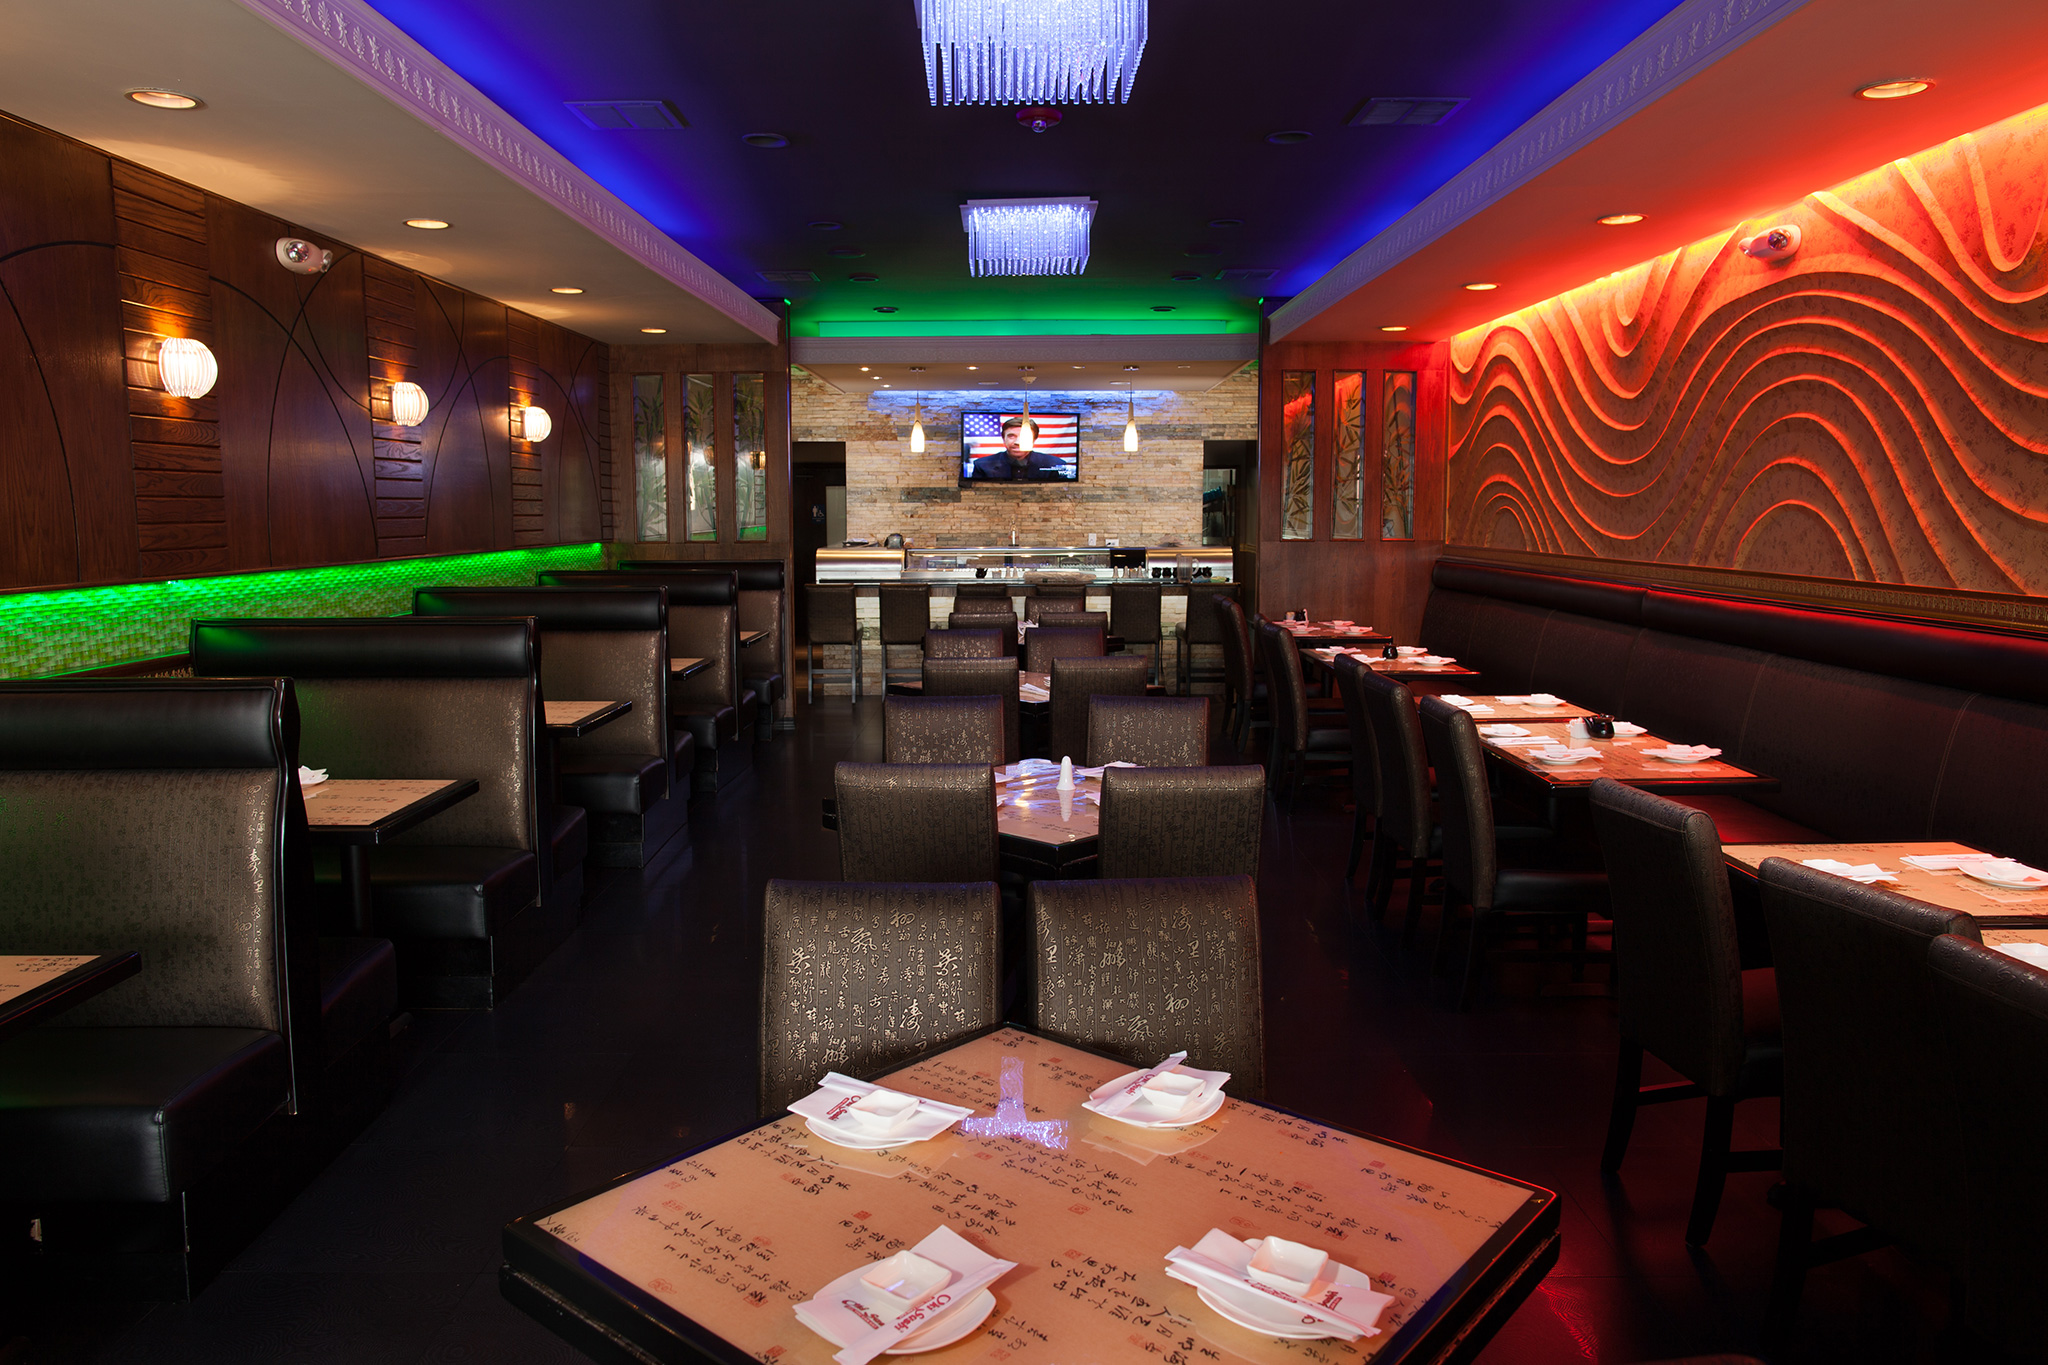 Oki Sushi - 1551 S. Valley Forge Rd. Lansdale, PA 19446